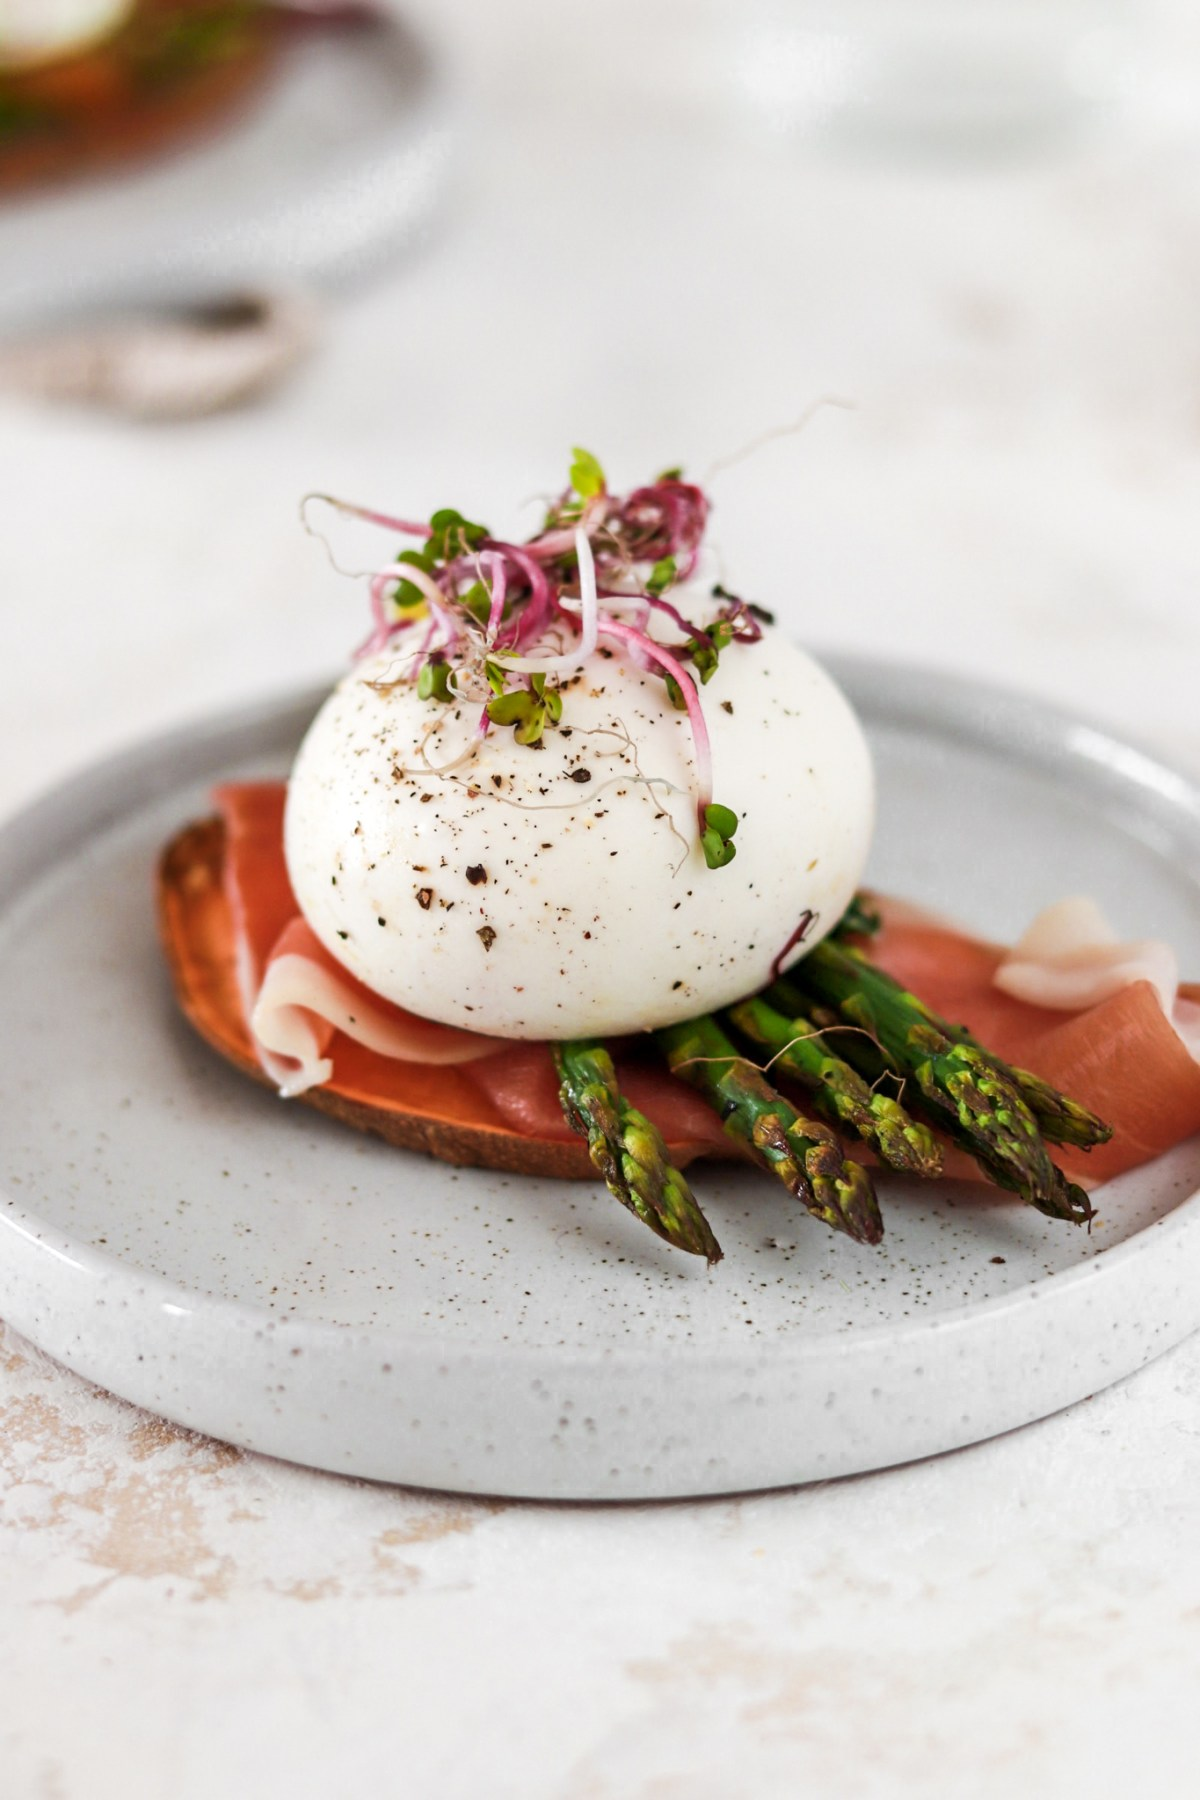 Sweet Potato Toast with Prosciutto, Asparagus & Burrata (Gluten & Grain Free) On Plate from Close Up